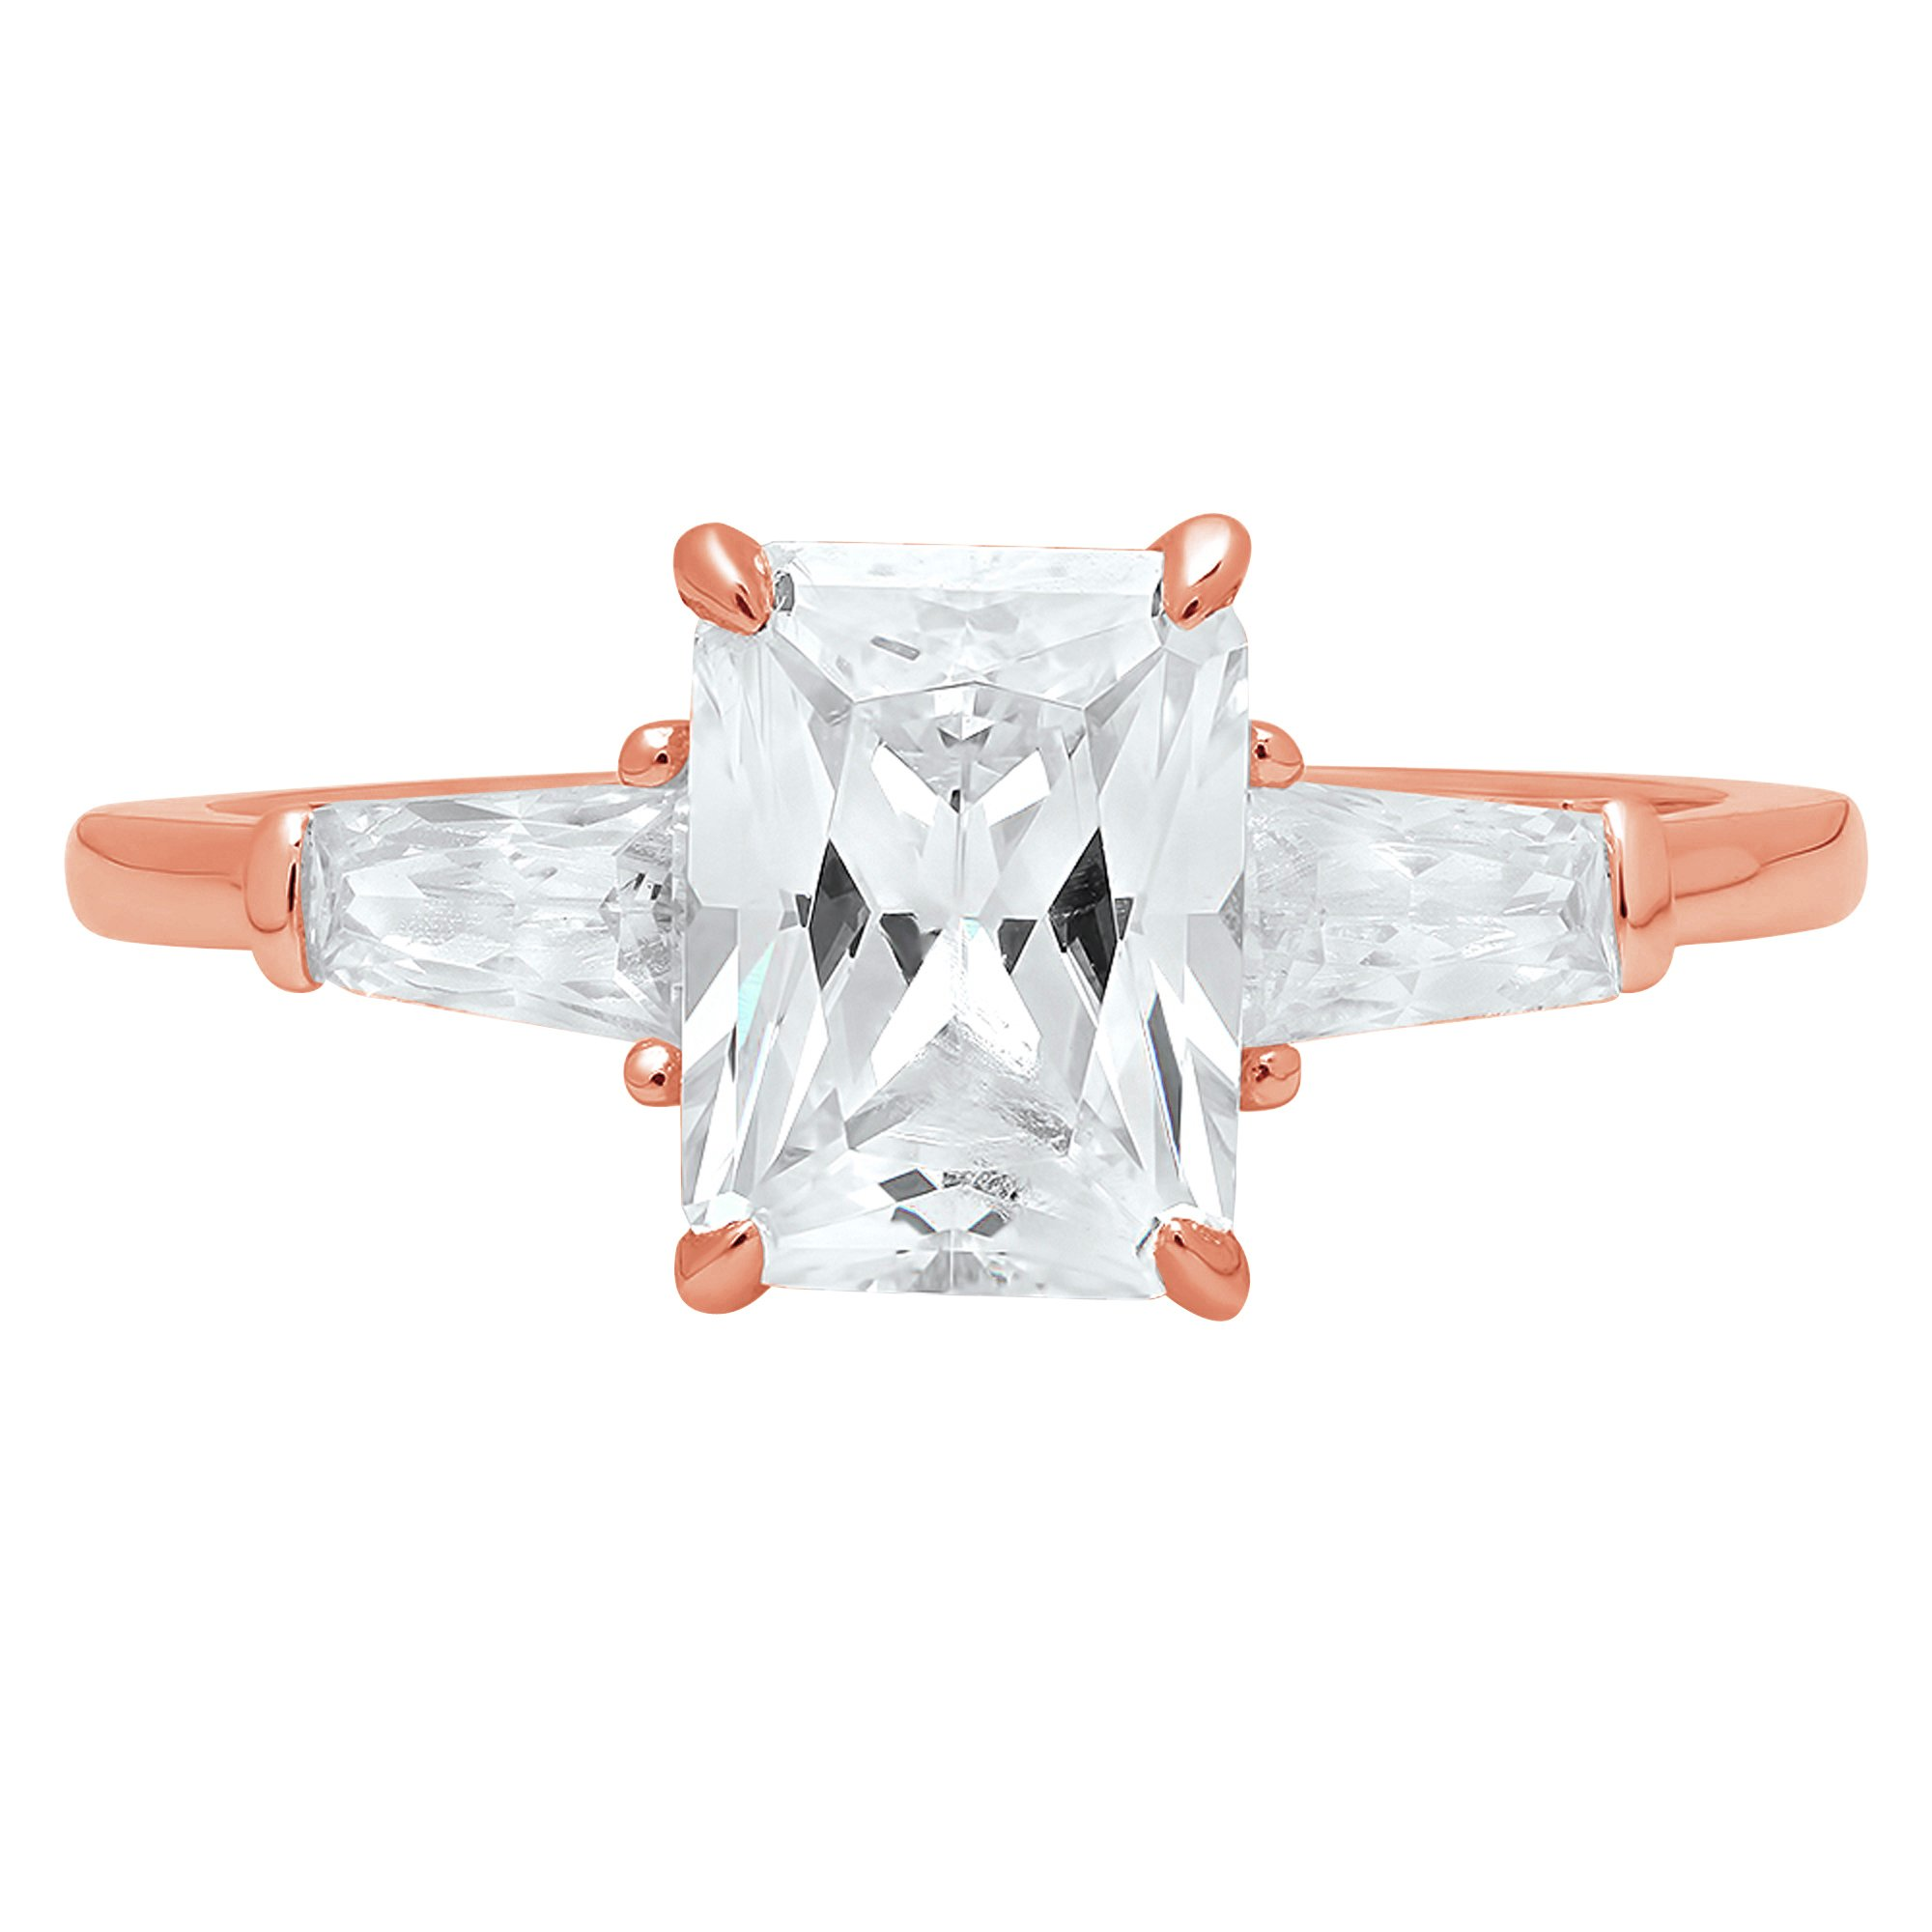 2.0ct Brilliant Emerald Cut Solitaire 3-Stone Engagement Wedding Bridal Anniversary Promise Band Ring Solid 14K Rose Gold for Women, 9.5 by Clara Pucci (Image #1)